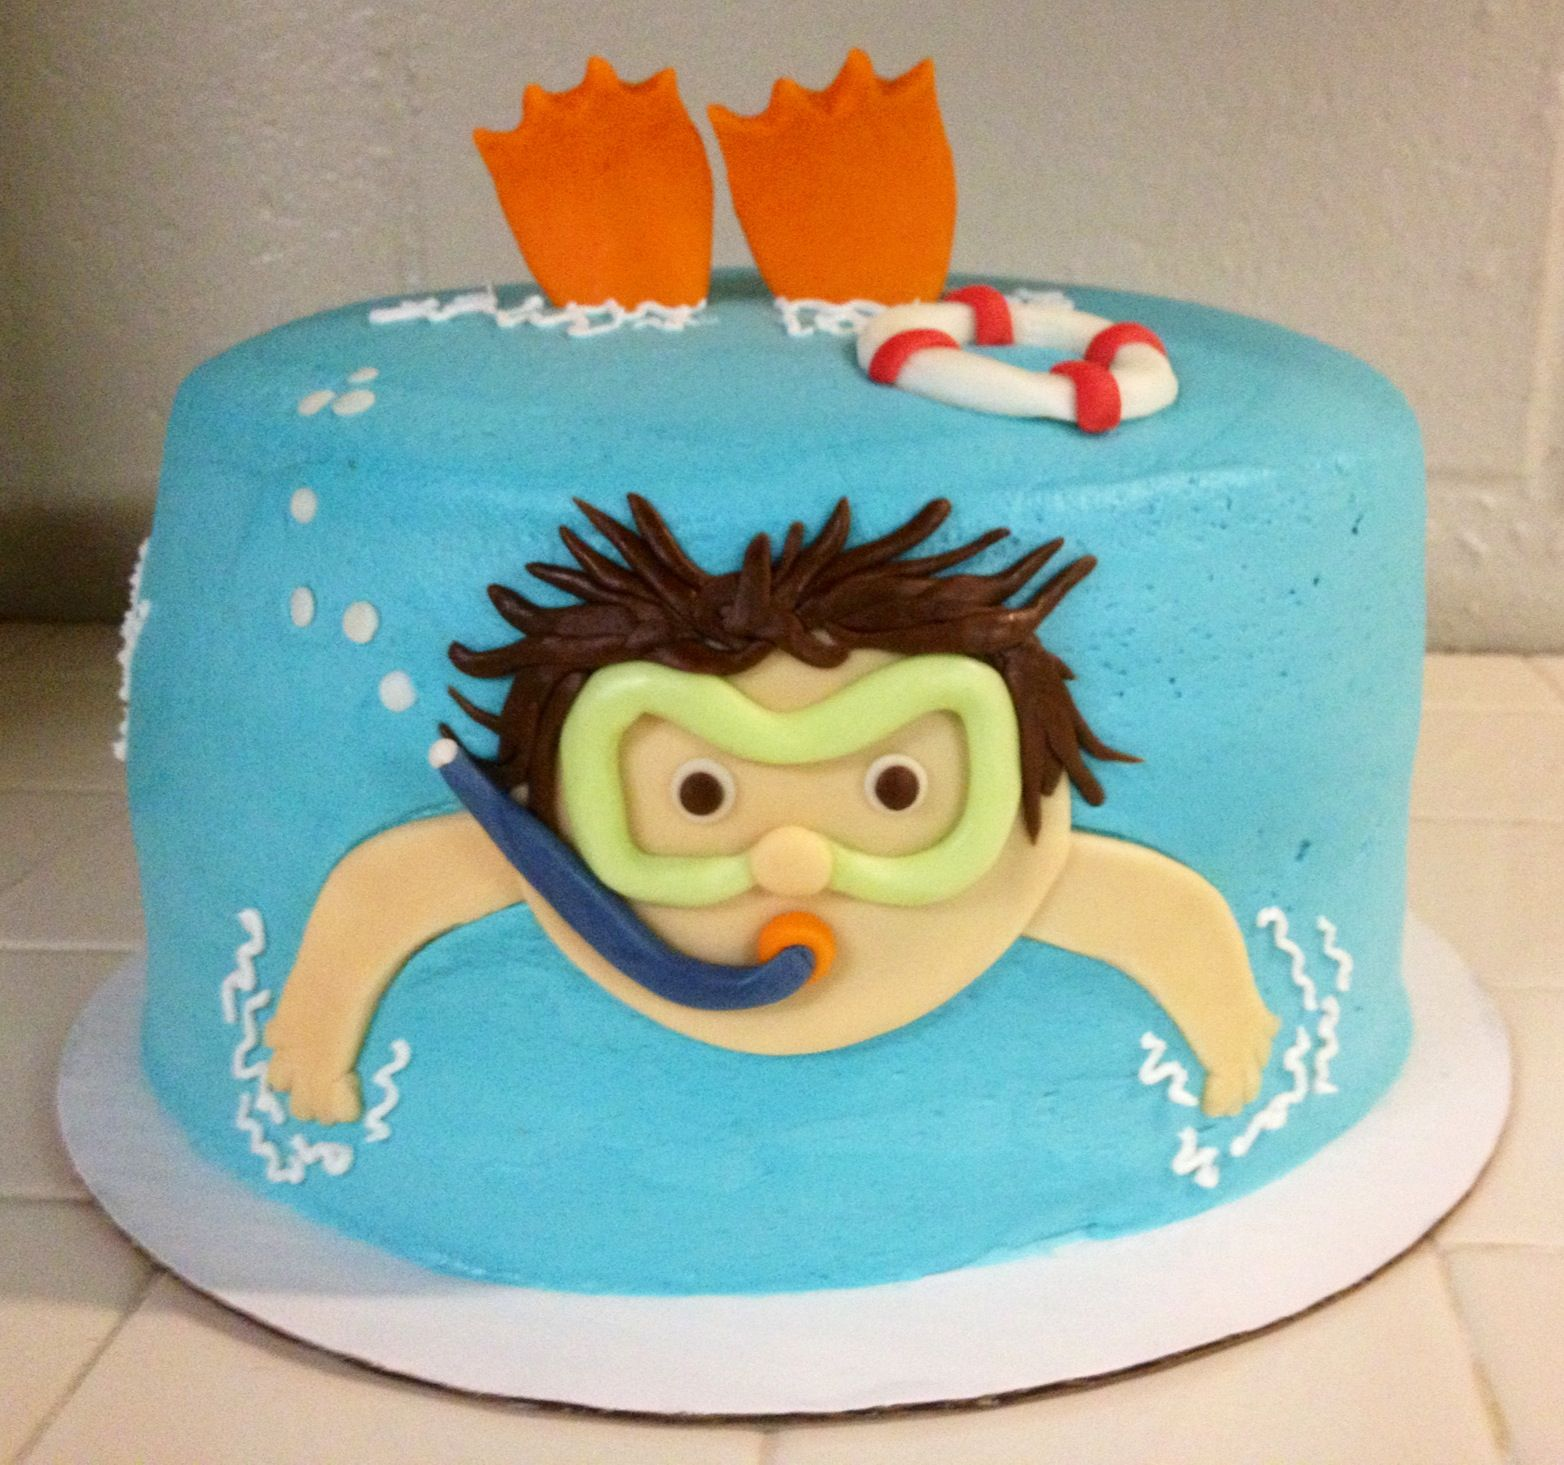 Pool party birthday cake cake ideas pool party cakes - Swimming pool birthday cake pictures ...